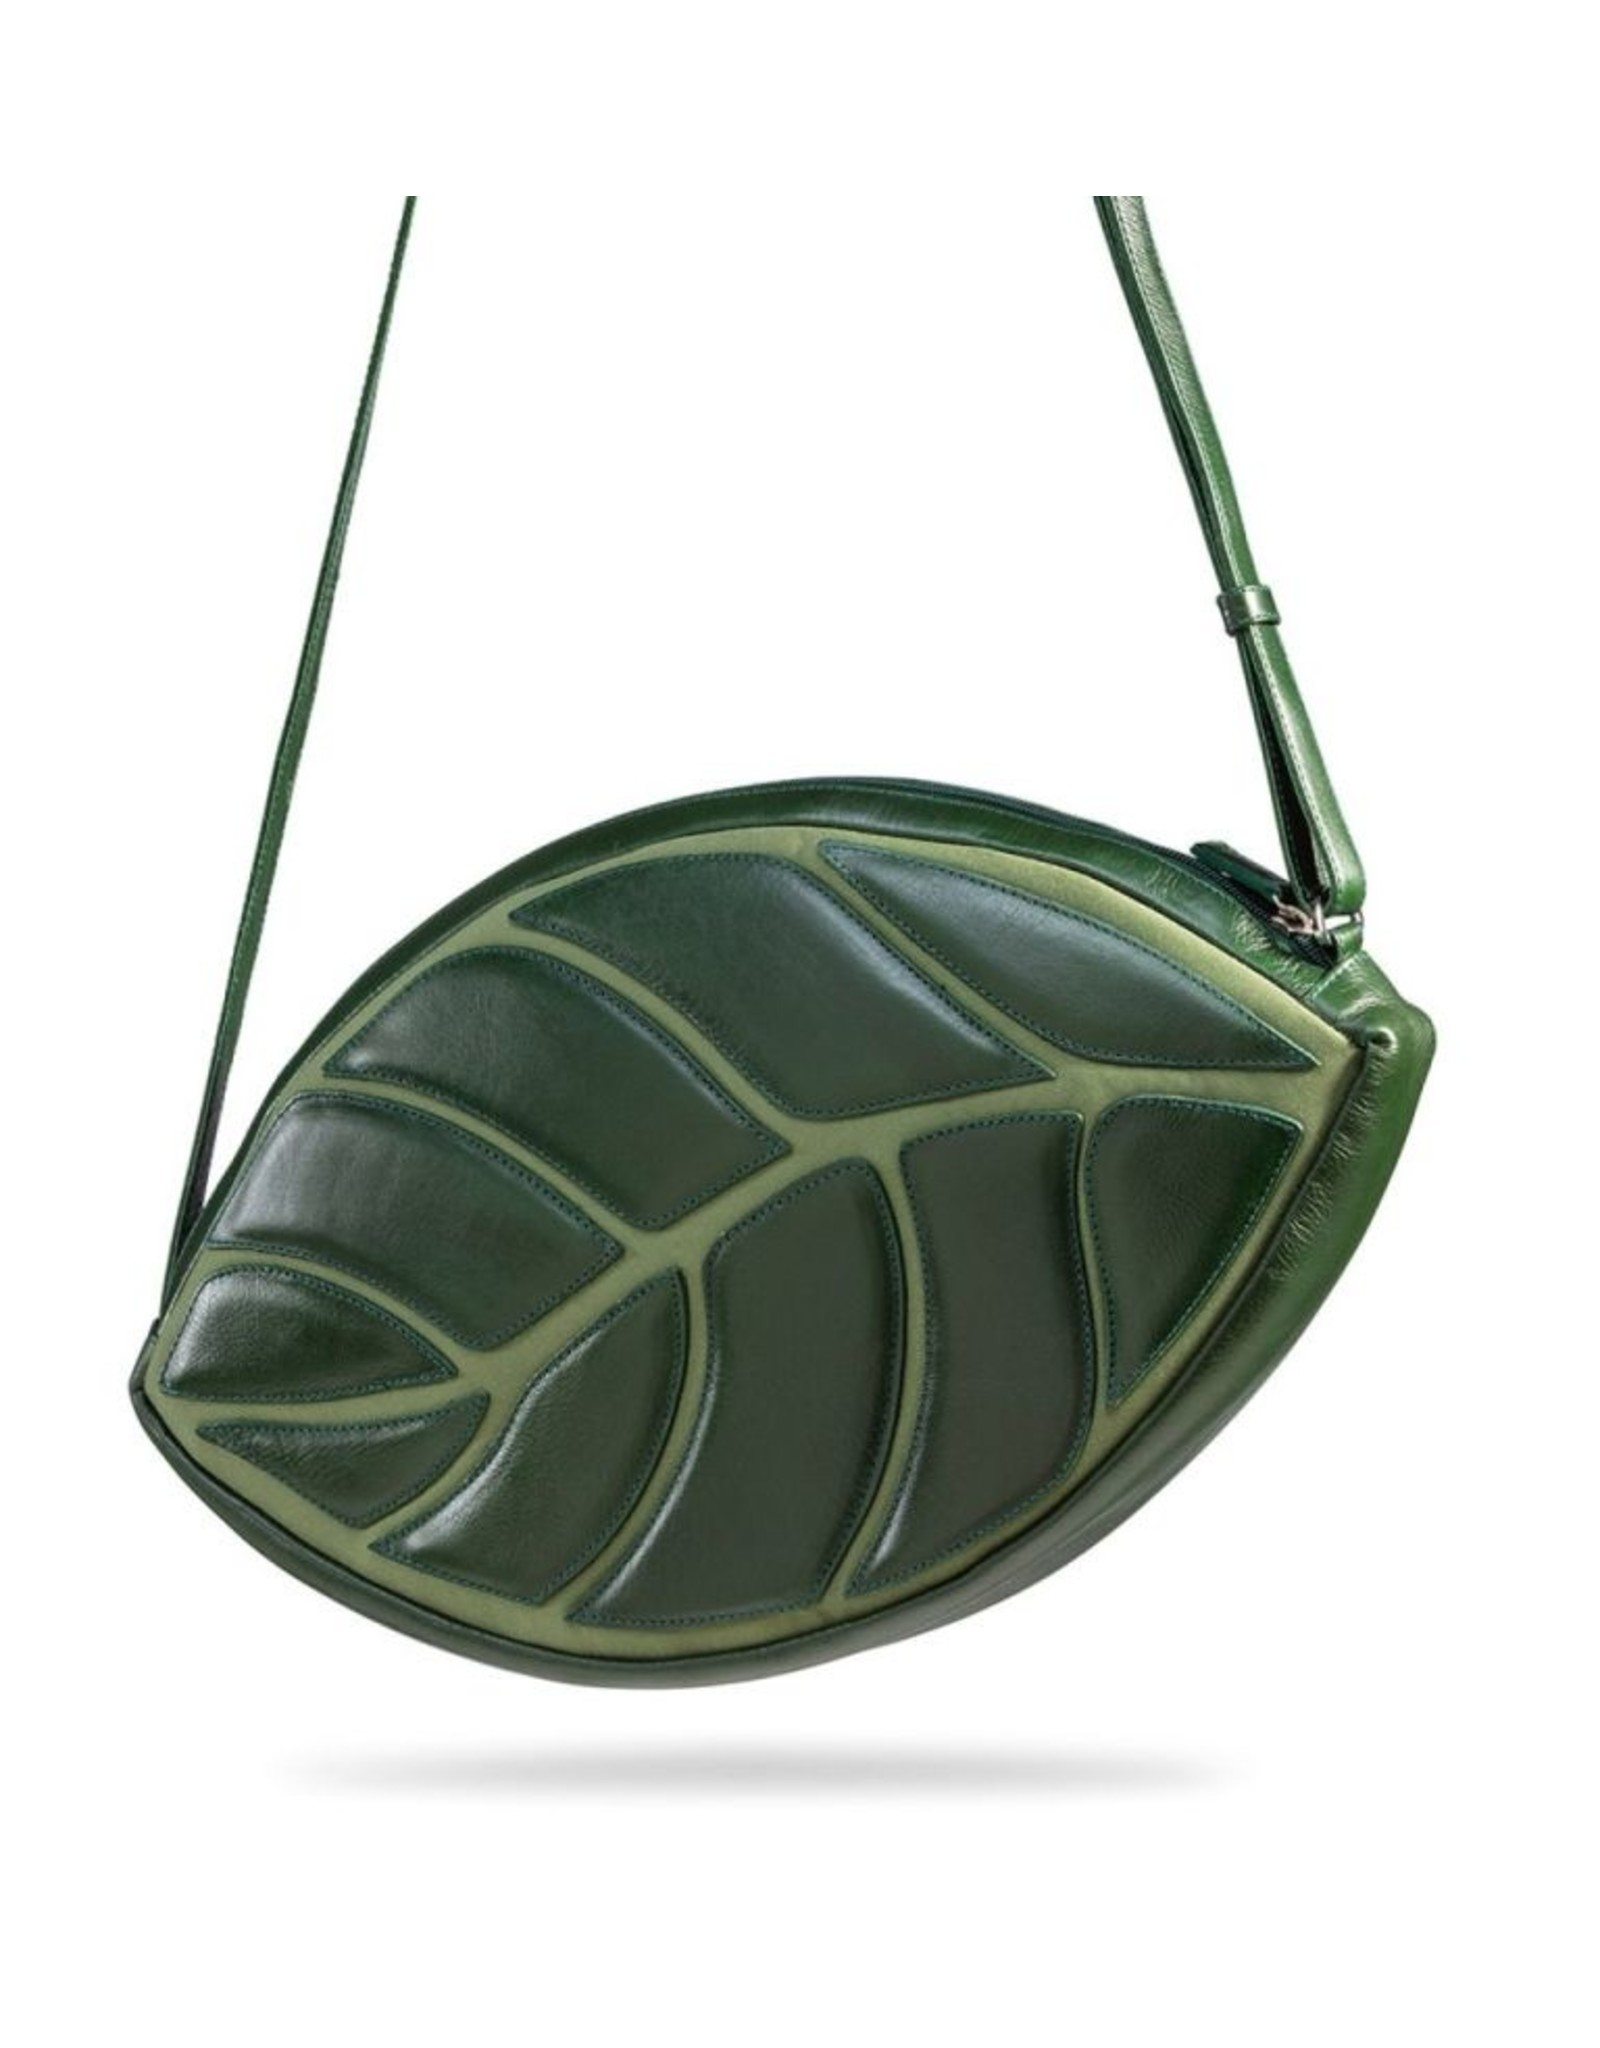 by-Lin Dutch Design Leather bags - by-Lin Dutch Design Daun Leathershoulder bag green